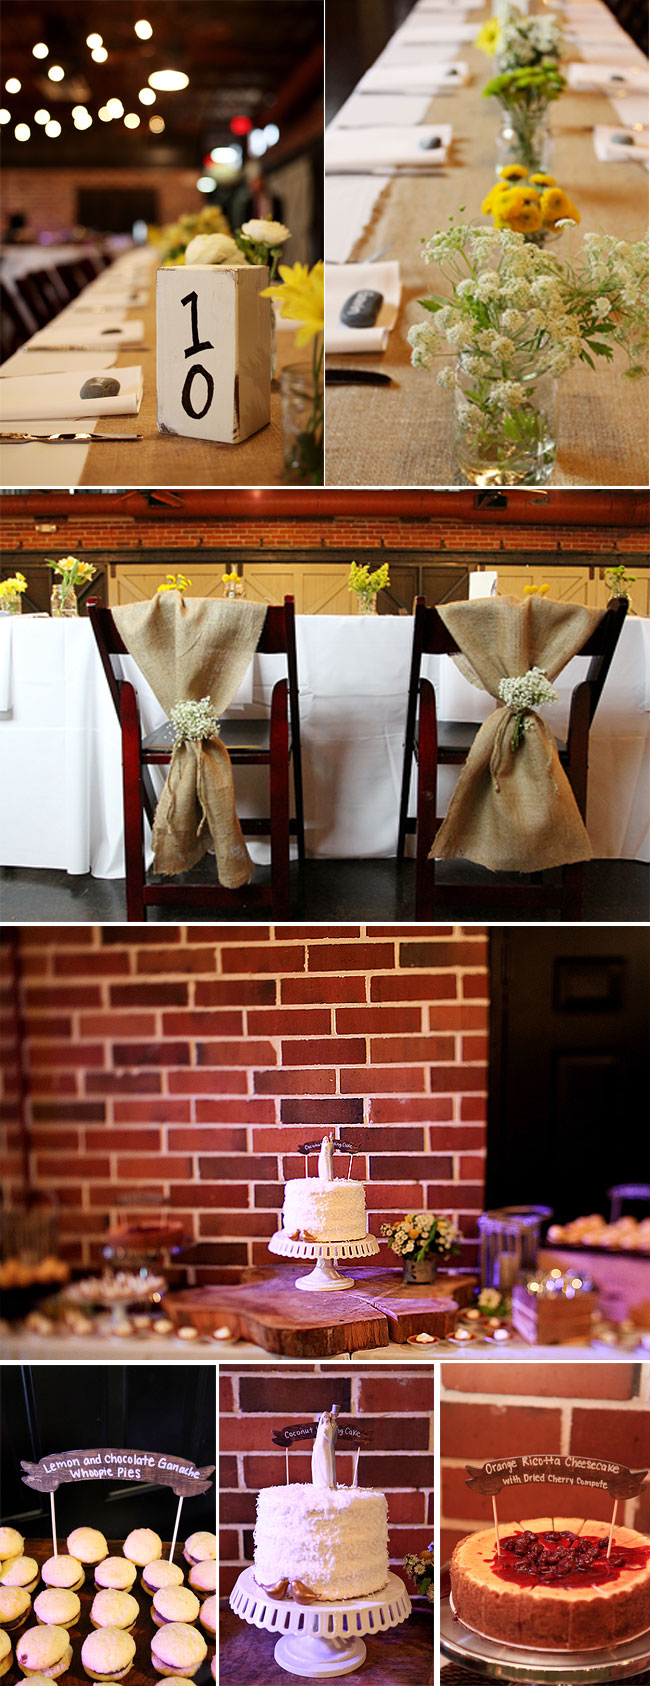 Rustic Indoor Wedding table settings, burlap sack on bride and groom chairs, dessert table